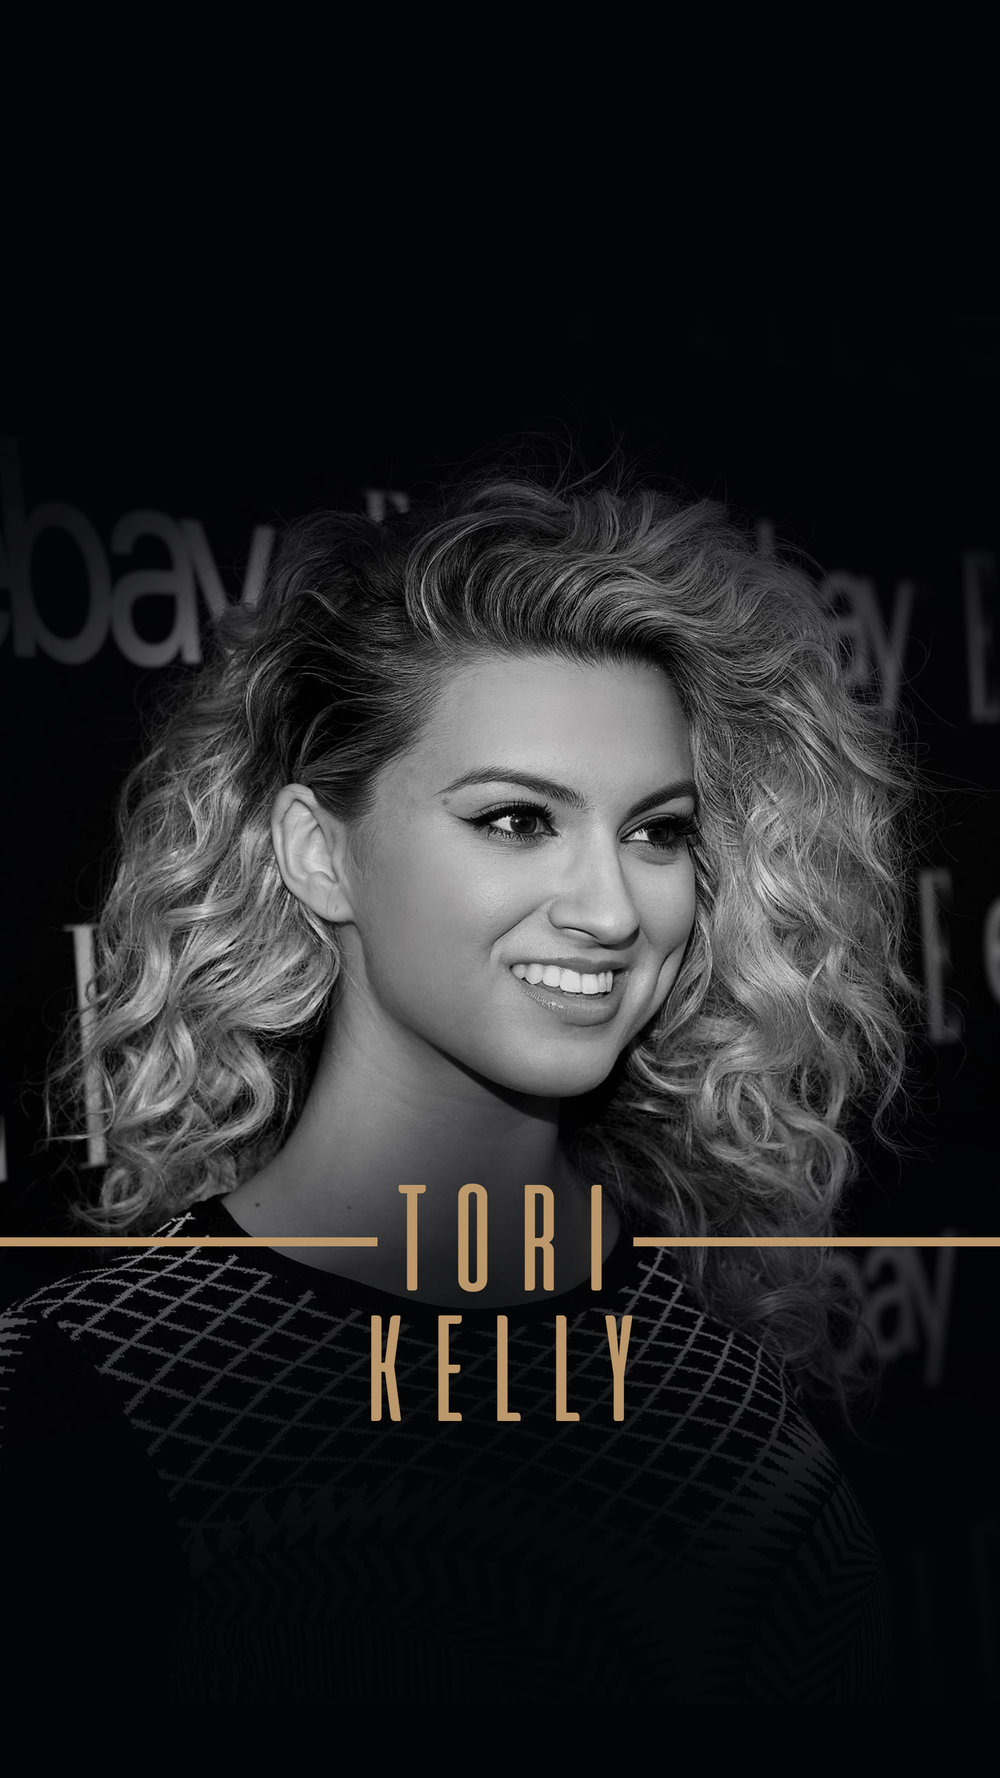 torikelly-lockscreen12.jpg